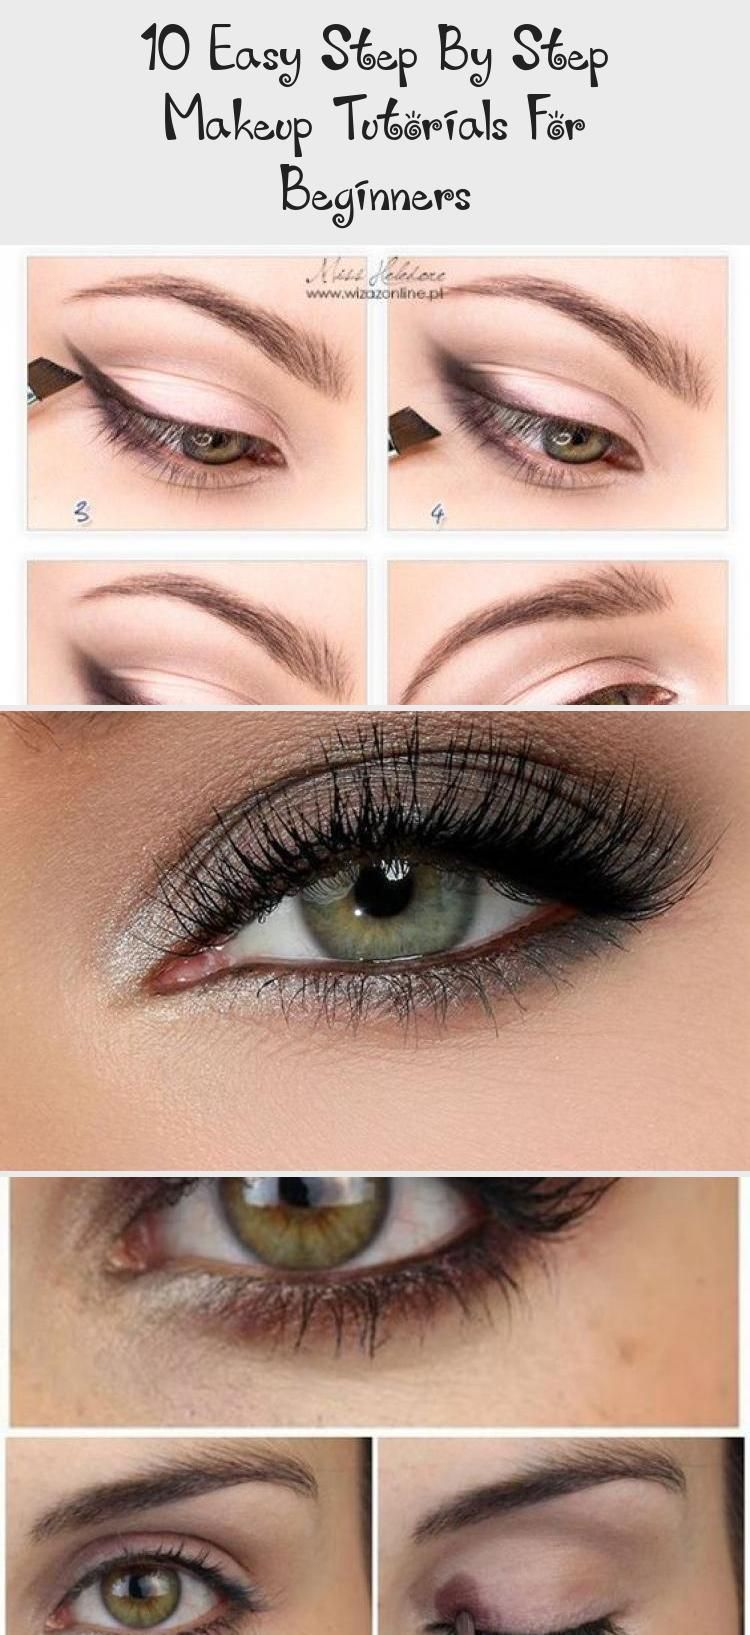 10 Easy Step By Step Makeup Tutorials For Beginners Makeup 10 Easy Step By Step Makeup In 2020 Makeup For Beginners Makeup Tutorial Makeup Tutorial For Beginners